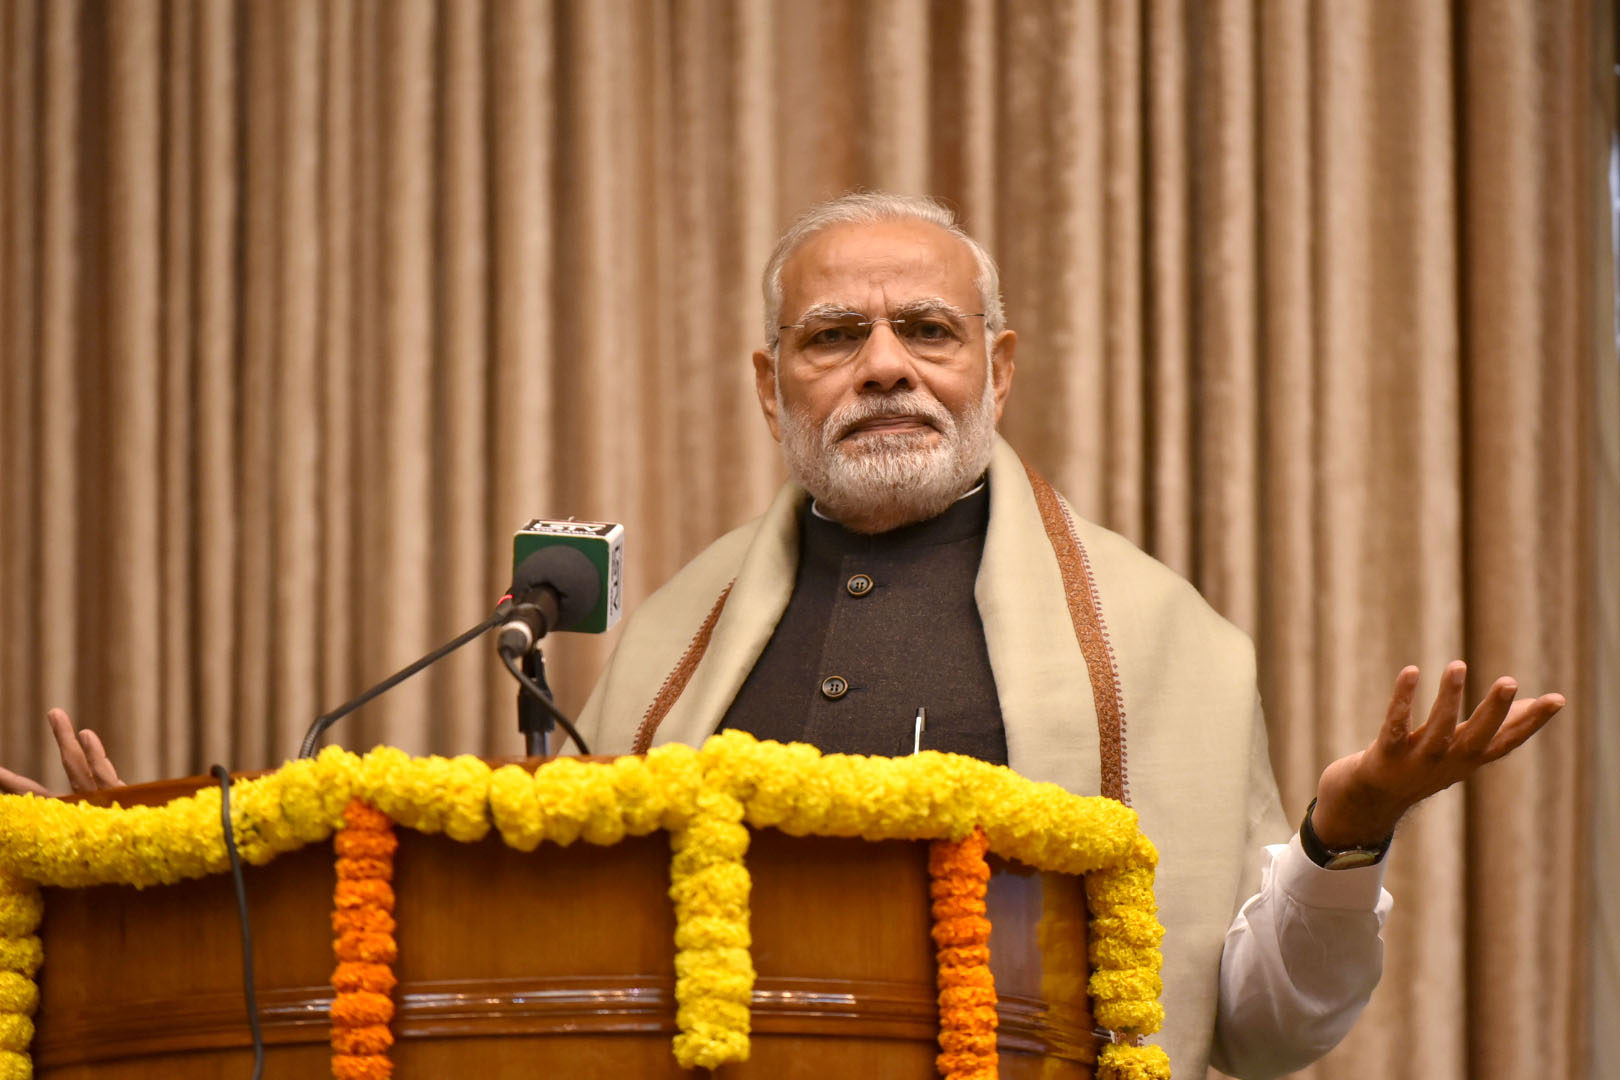 The Prime Minister, Shri Narendra Modi addressing at the ceremony to mark the release of two books on Indian Constitution, at Parliament House Annexe, in New Delhi on November 25, 2016.